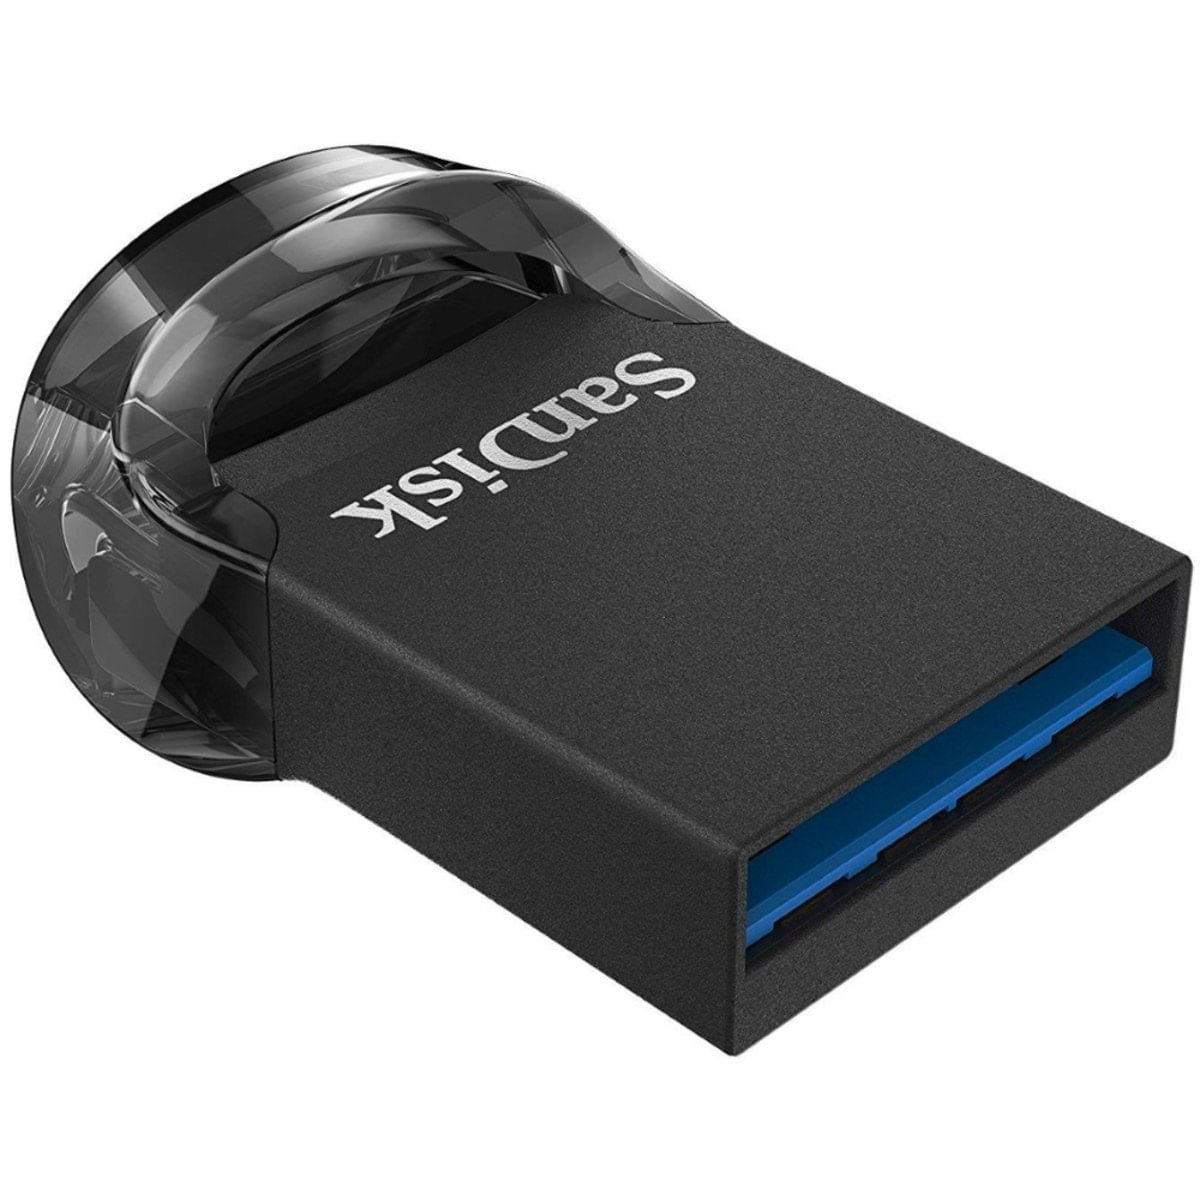 Pen Drive Sandisk Ultra Fit 64gb - Sdcz43064gg46